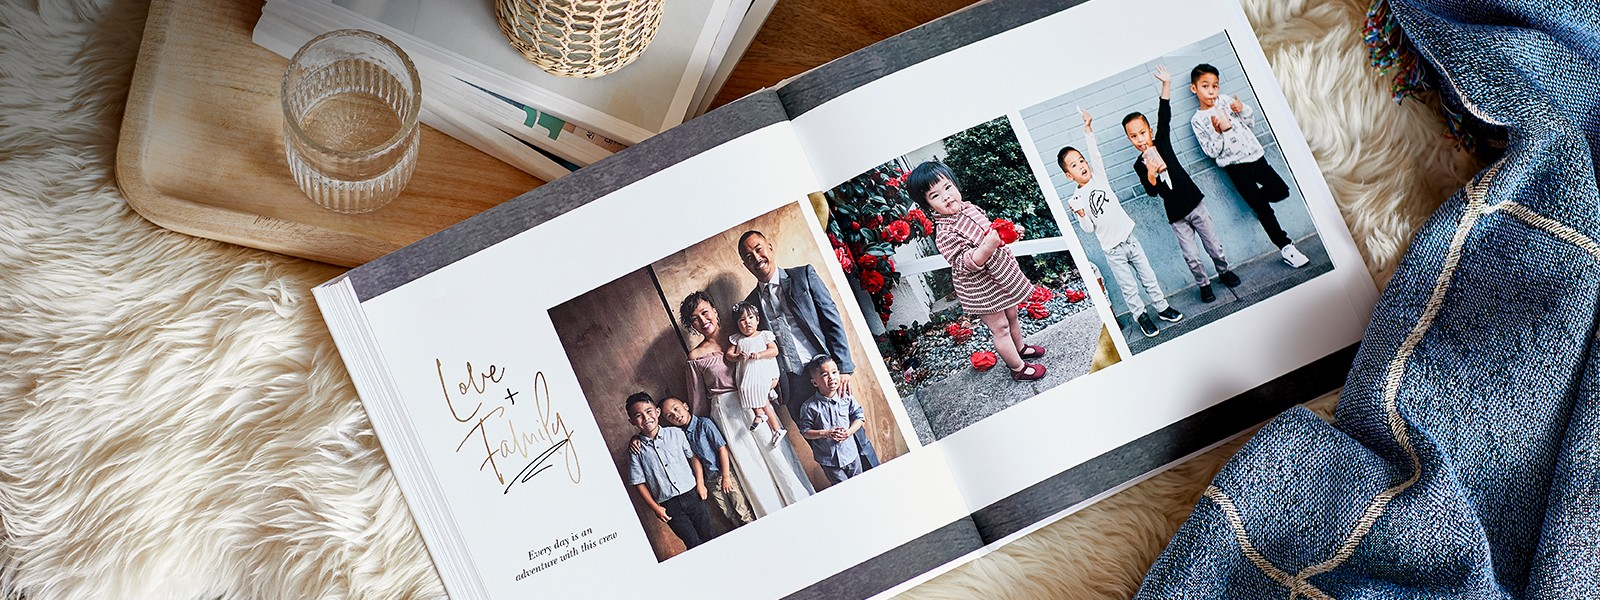 Photo Books Photo Albums Make A Photo Book Online Shutterfly